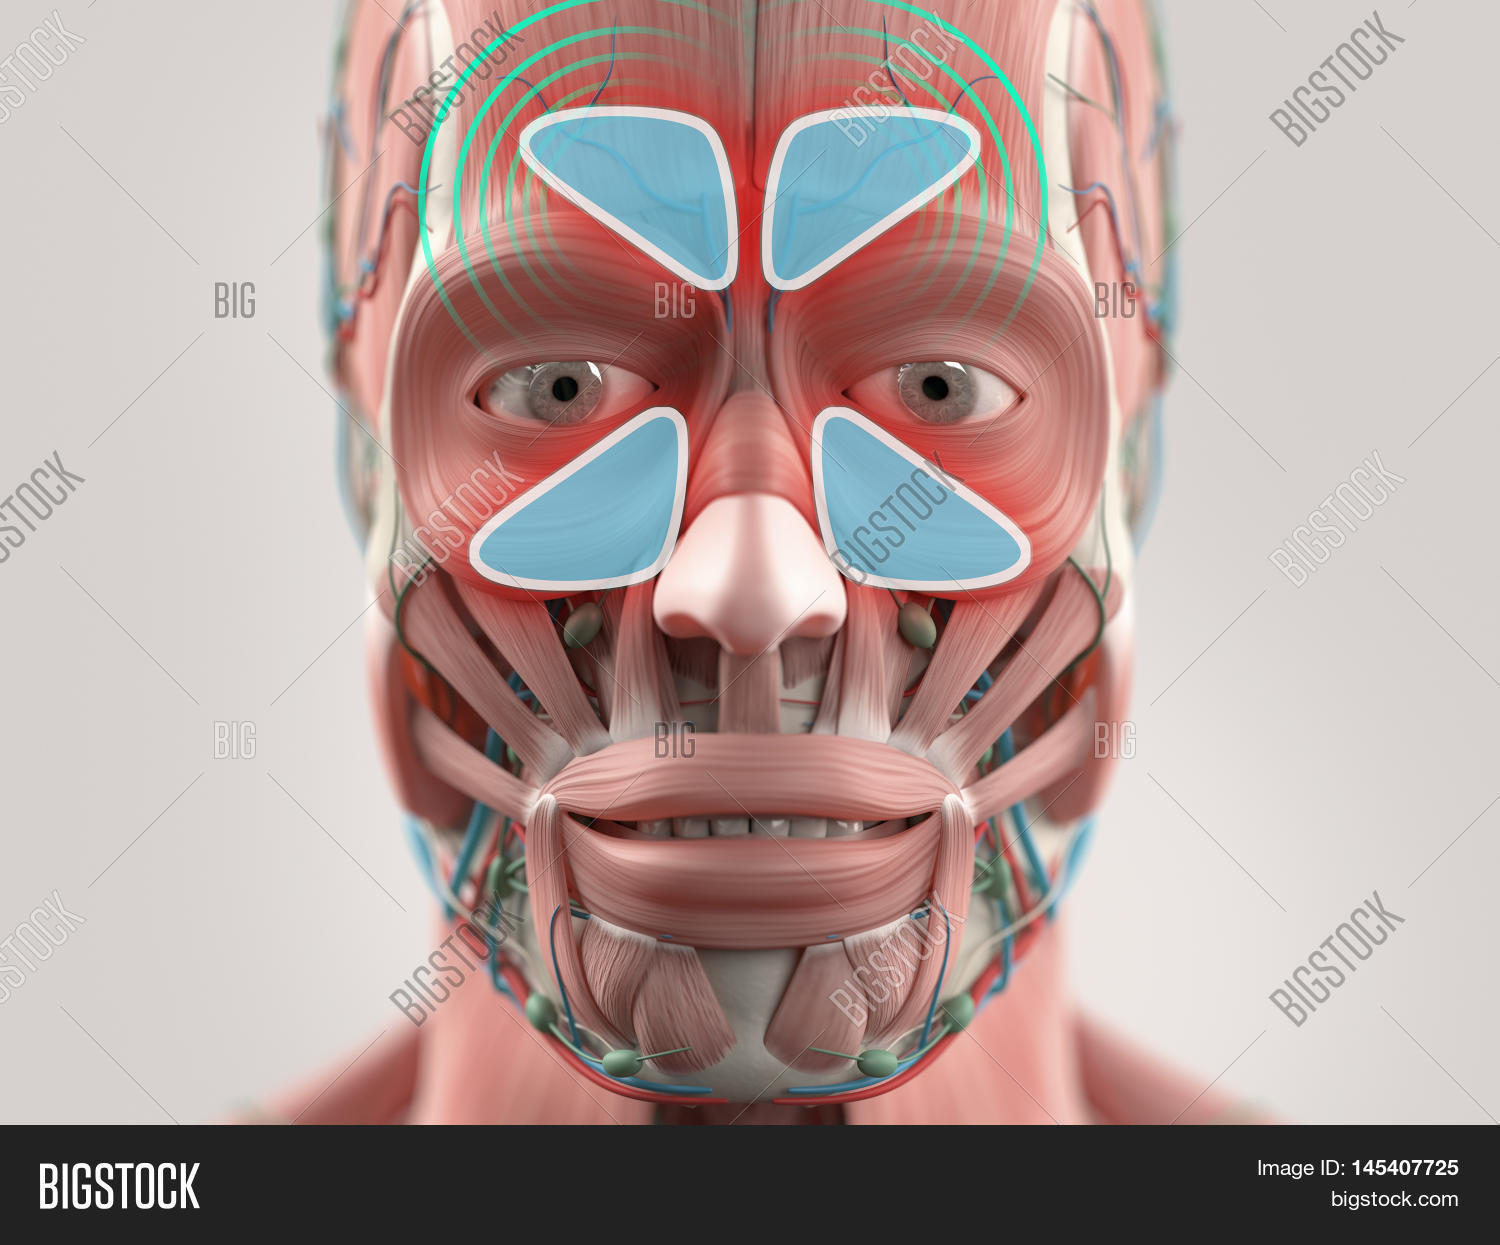 Anatomy Model Showing Image Photo Free Trial Bigstock